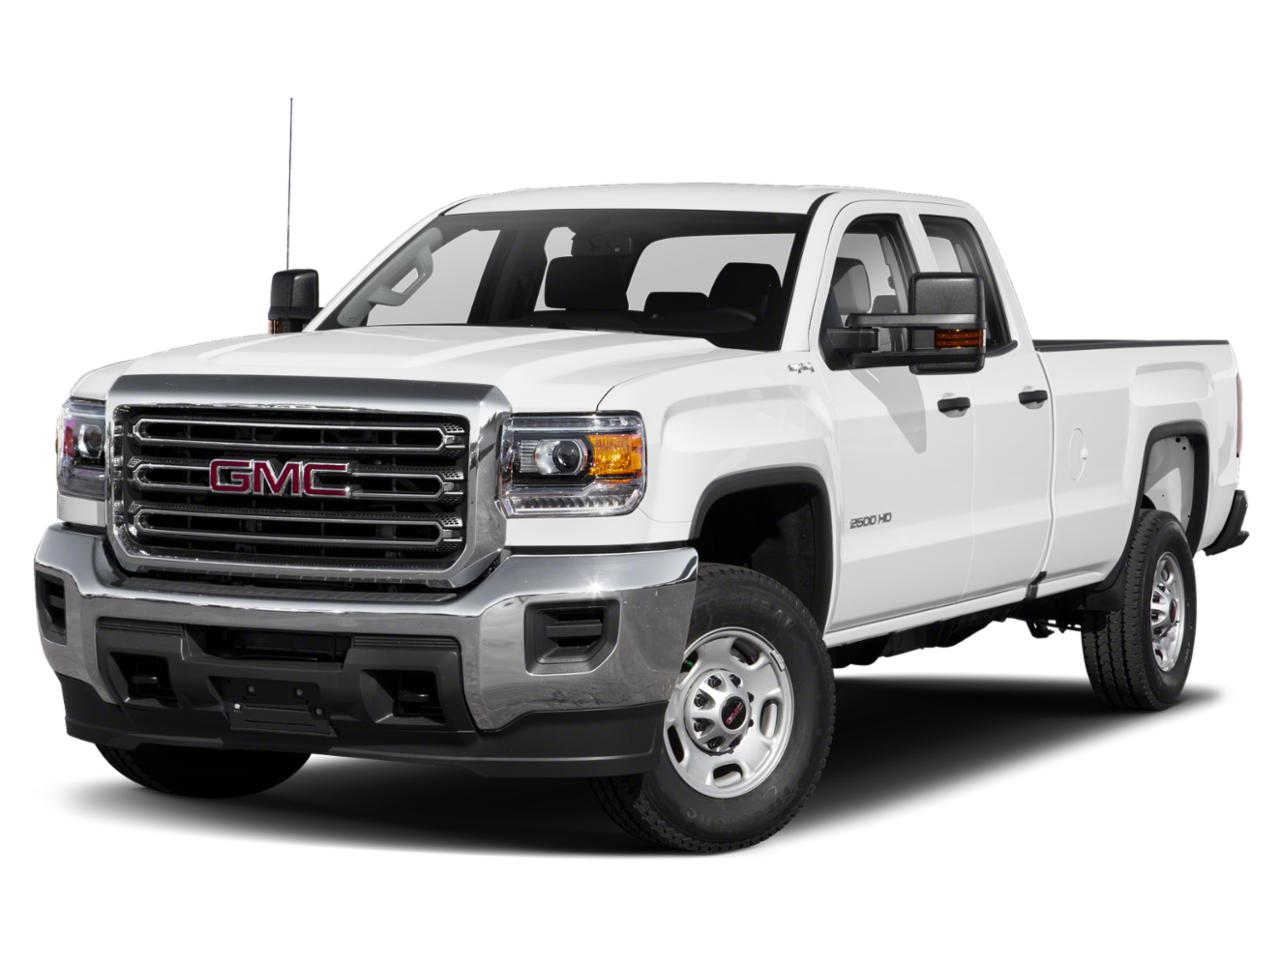 2019 GMC Sierra 2500HD Vehicle Photo in Danbury, CT 06810